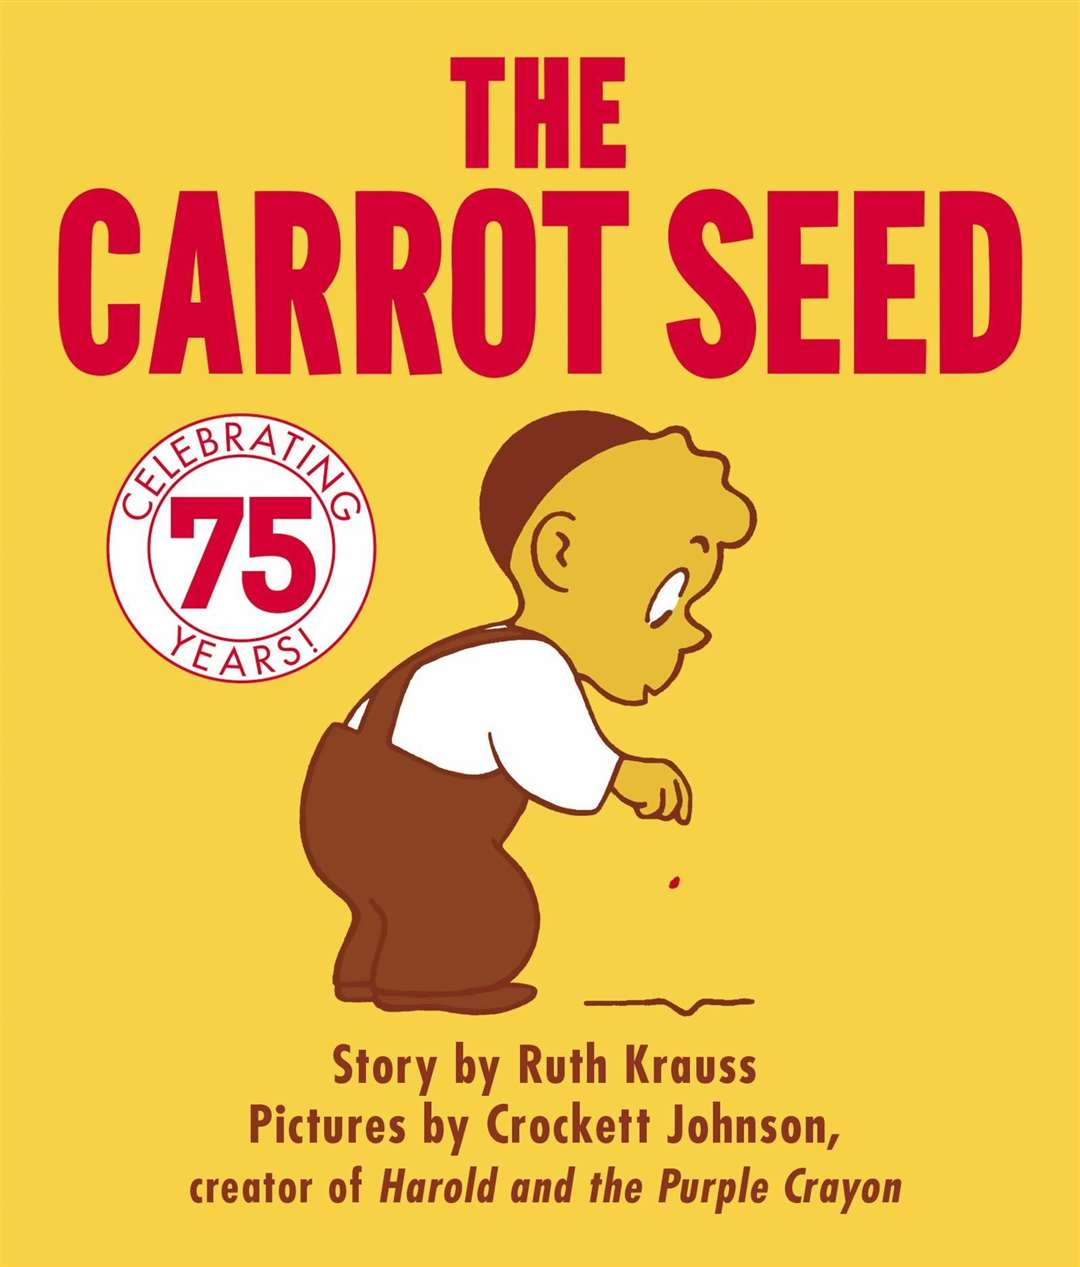 The Carrot Seed by Ruth Krauss and Crockett Johnson (46204148)